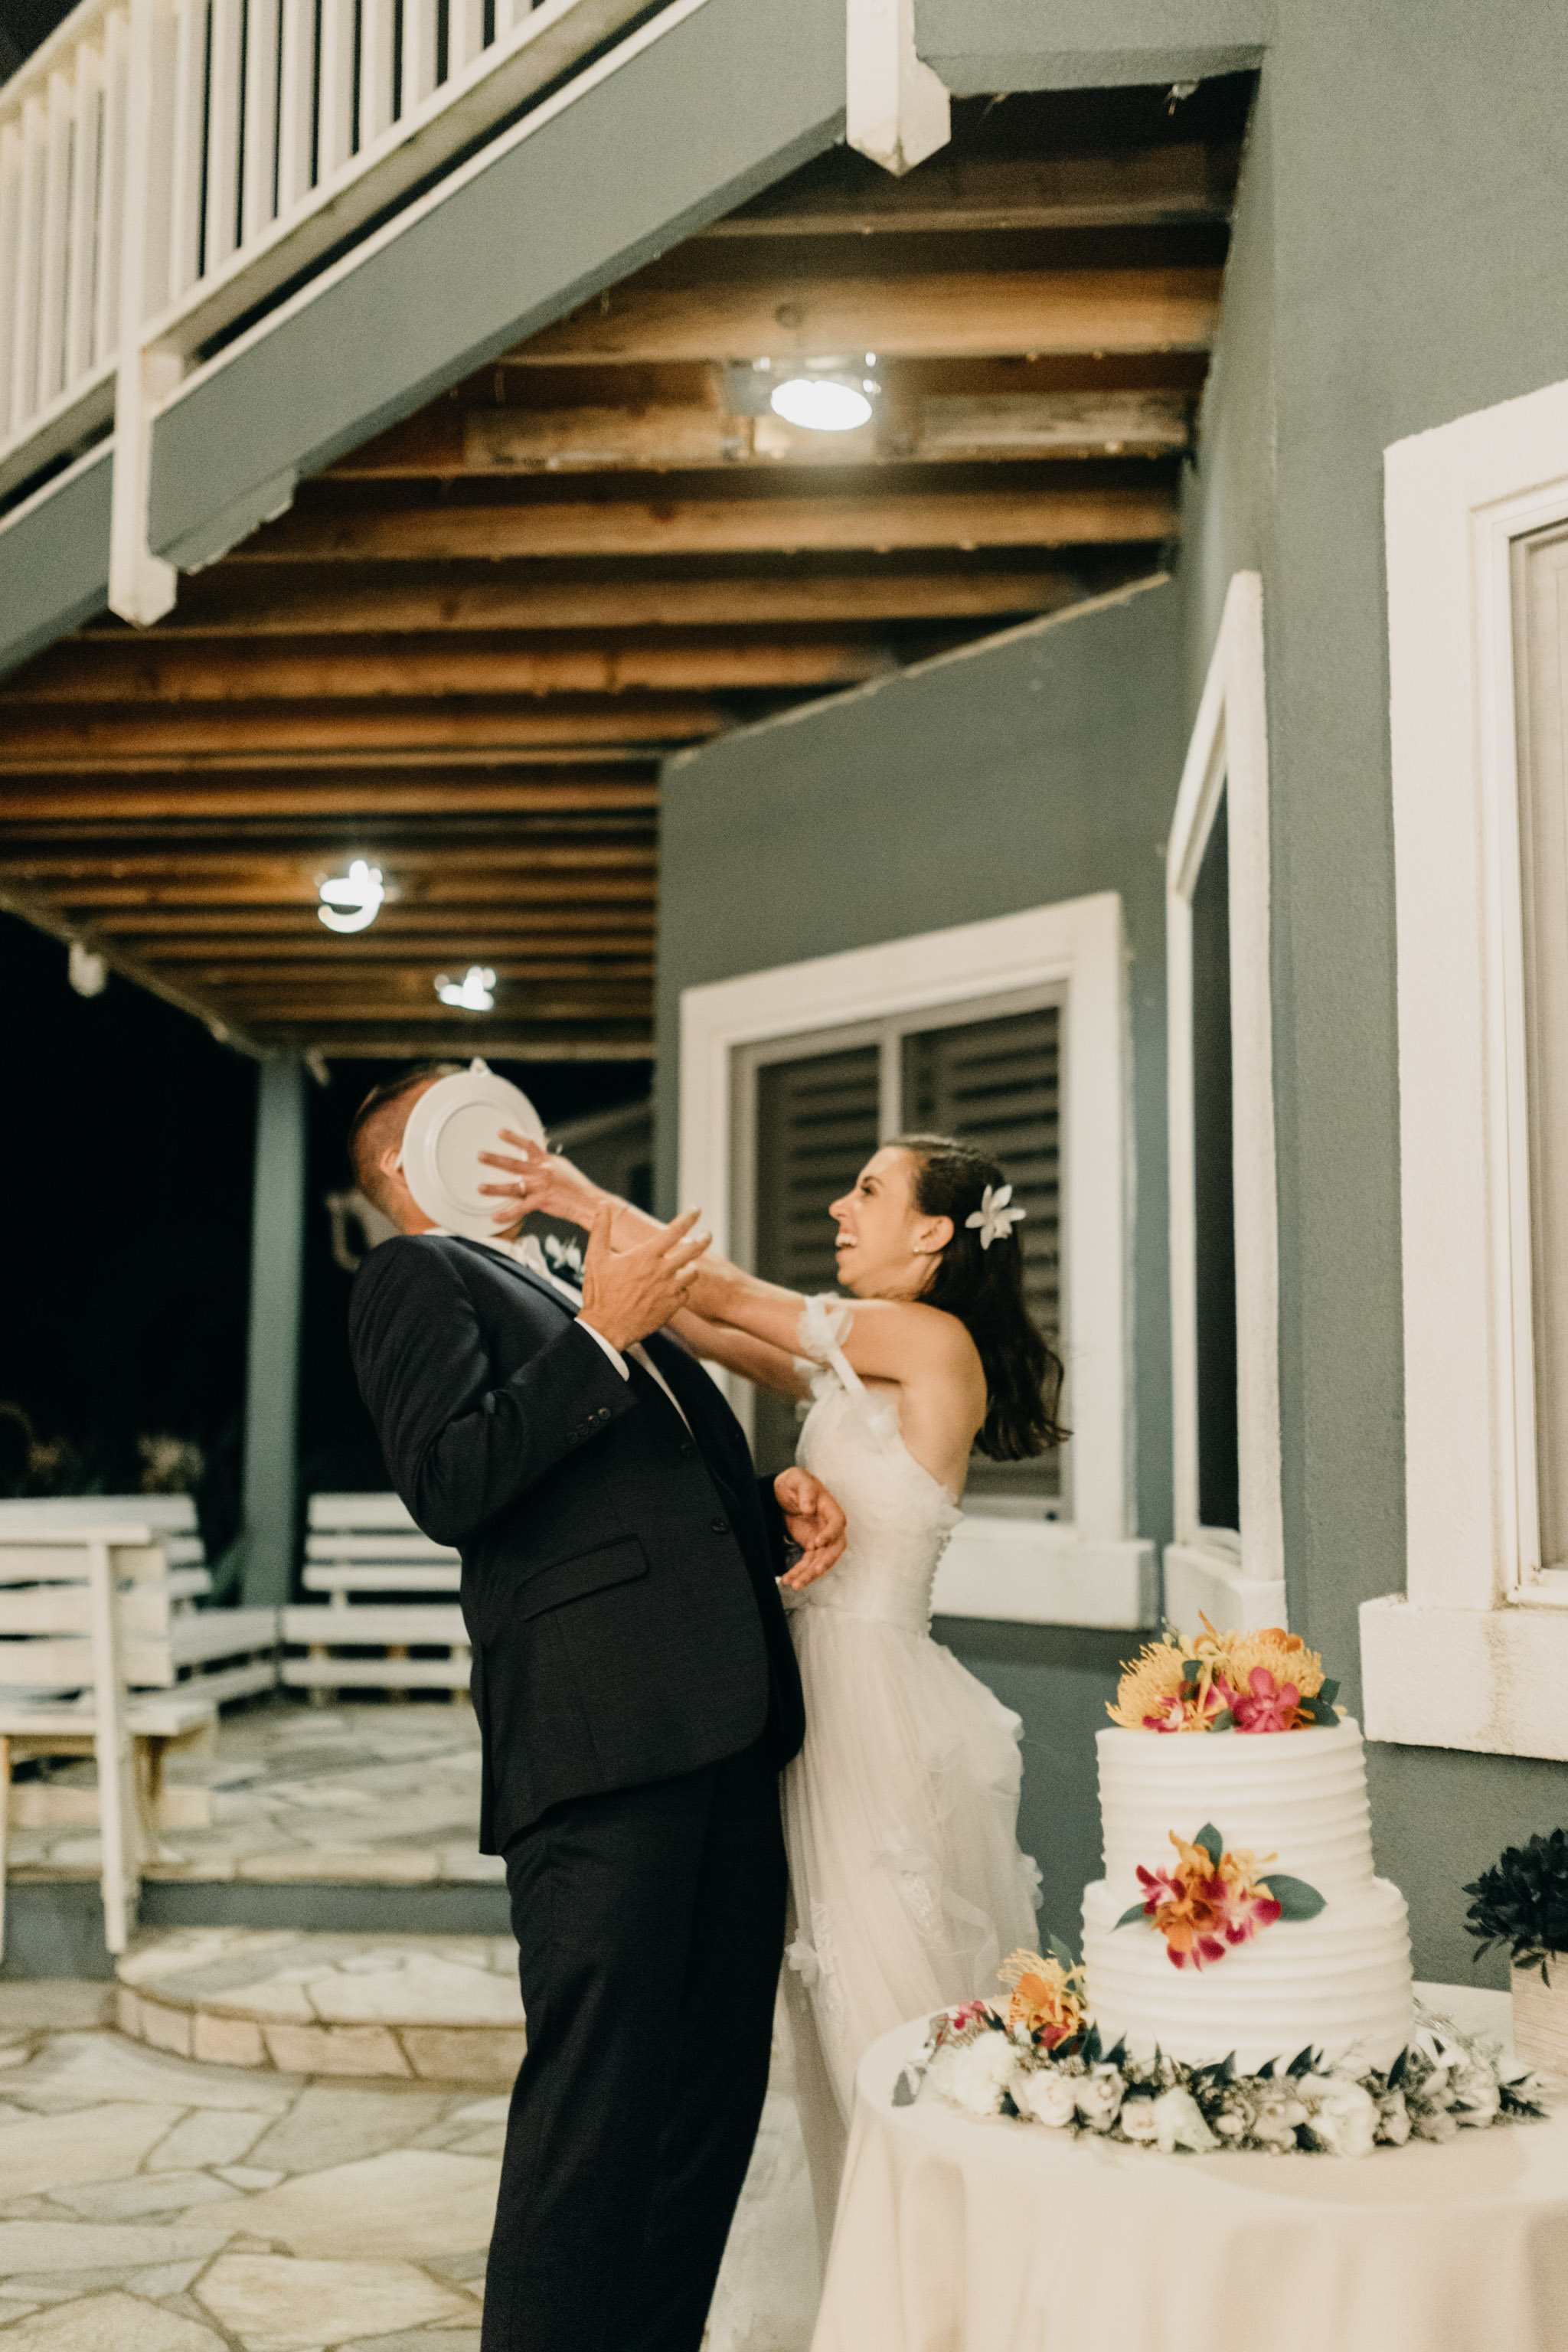 Laie Point Backyard Wedding By Hawaii Wedding Photographer Desiree Leilani